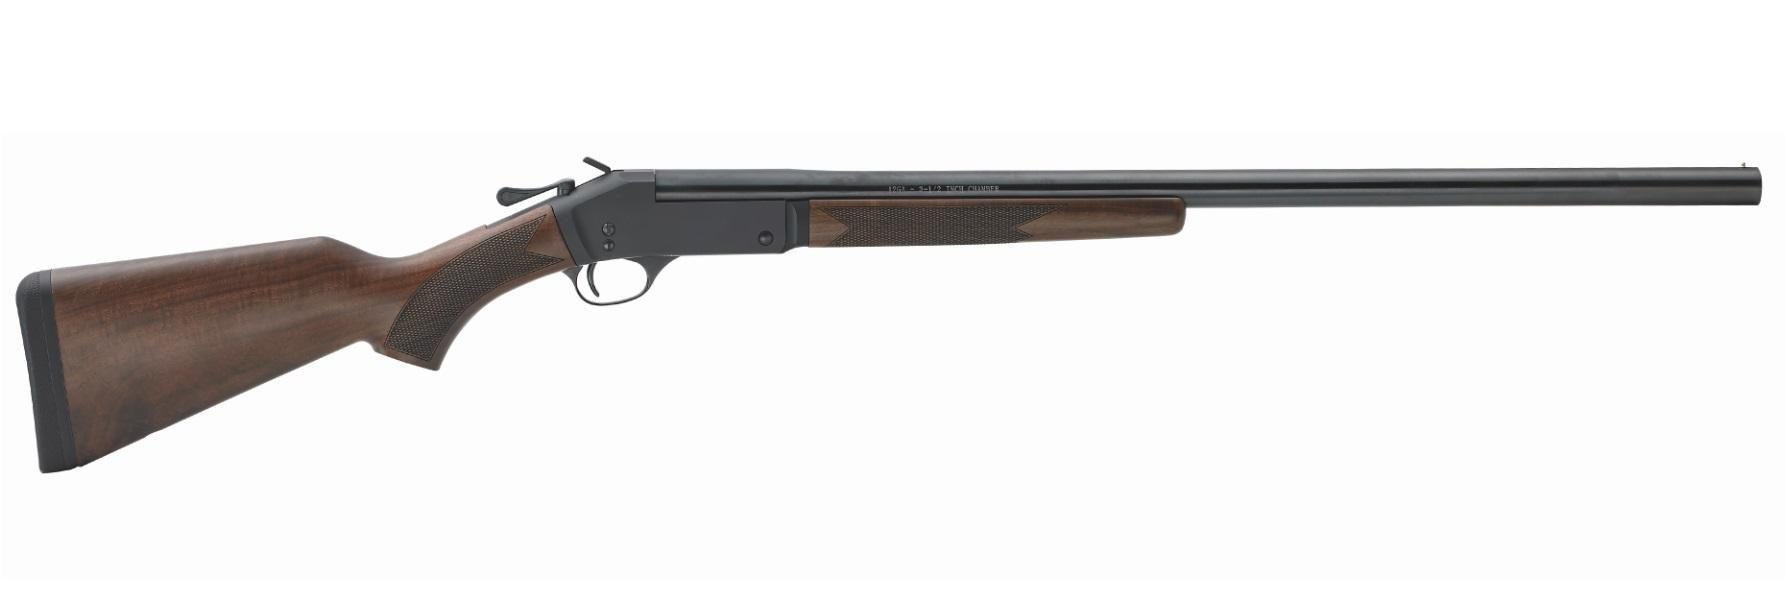 Henry Repeating Arms  Single Shot Shotgun-img-5